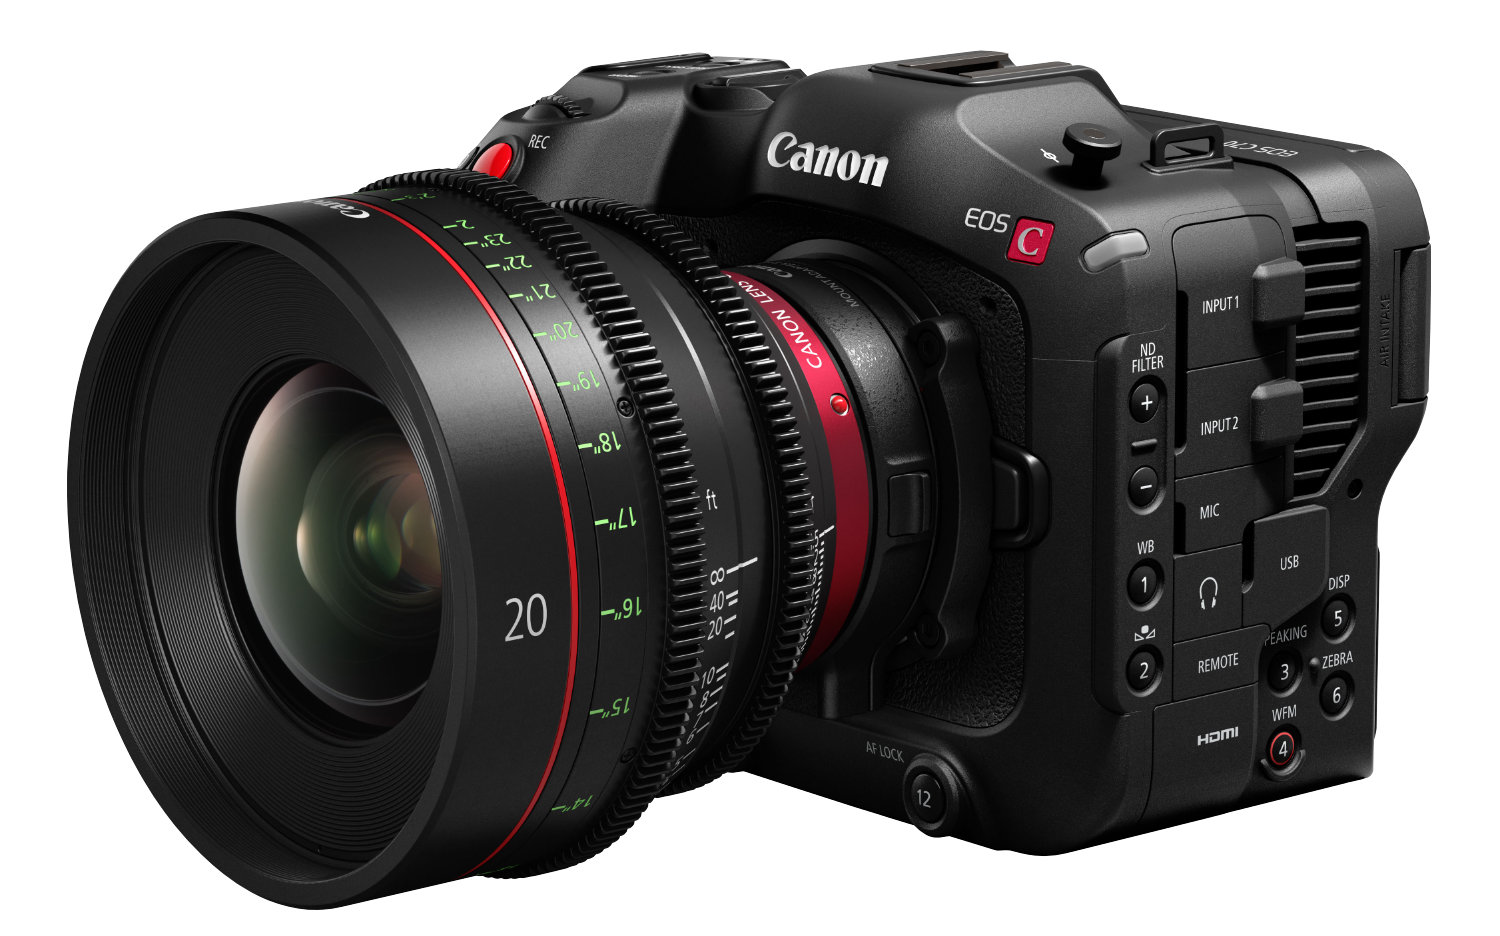 Canon Cinema EOS C70 - S35 RF mount with optional EF speed booster